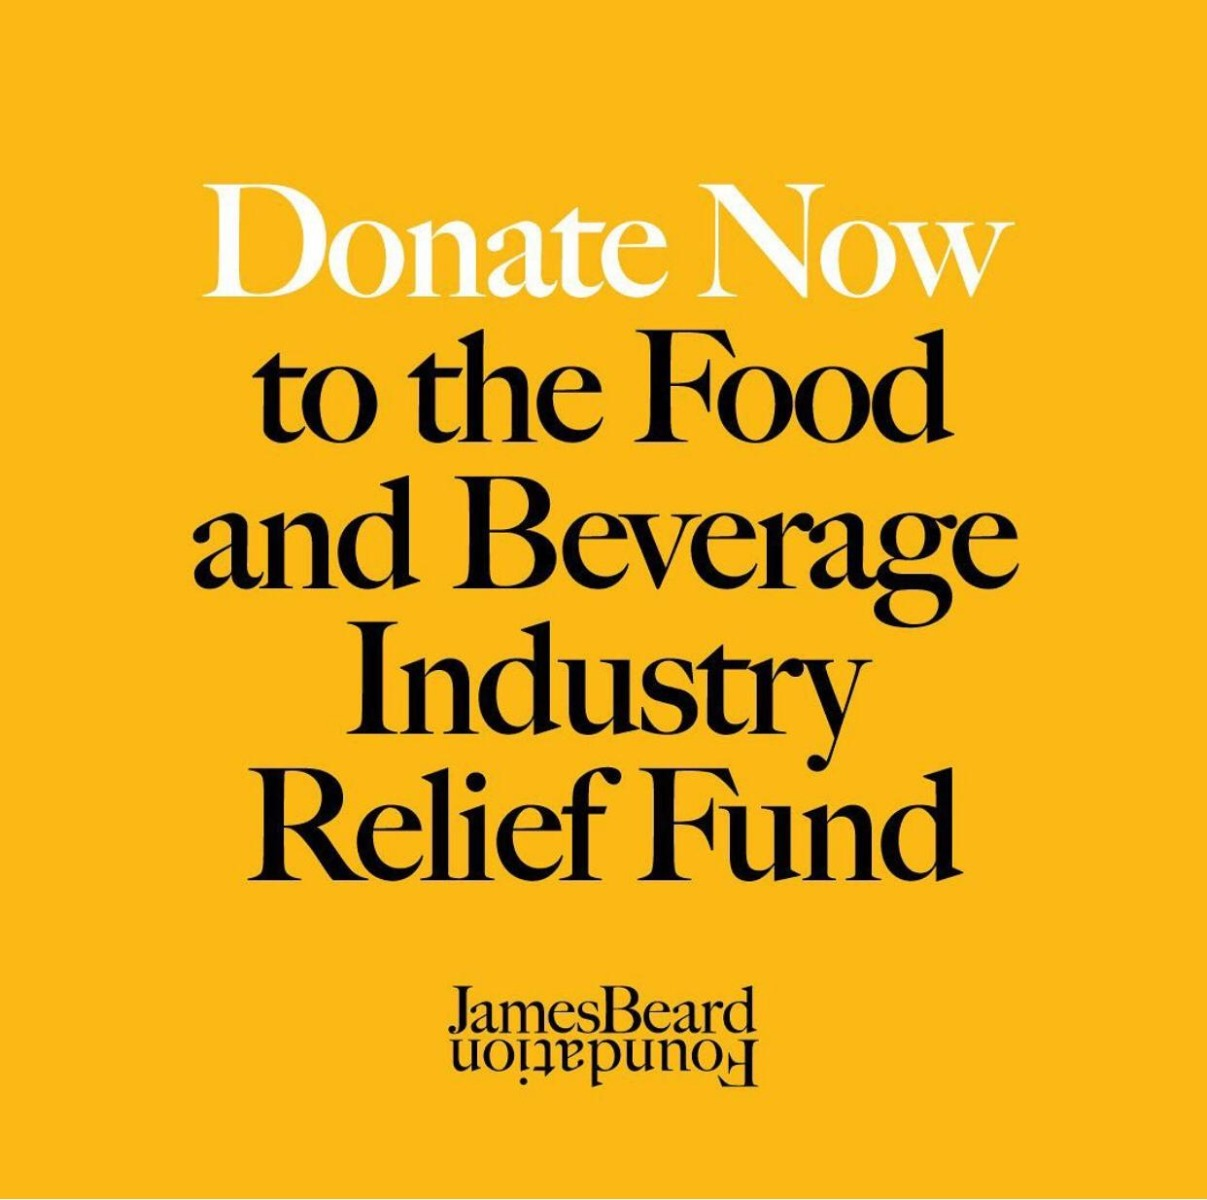 JBF Food and Beverage Industry Relief Fund